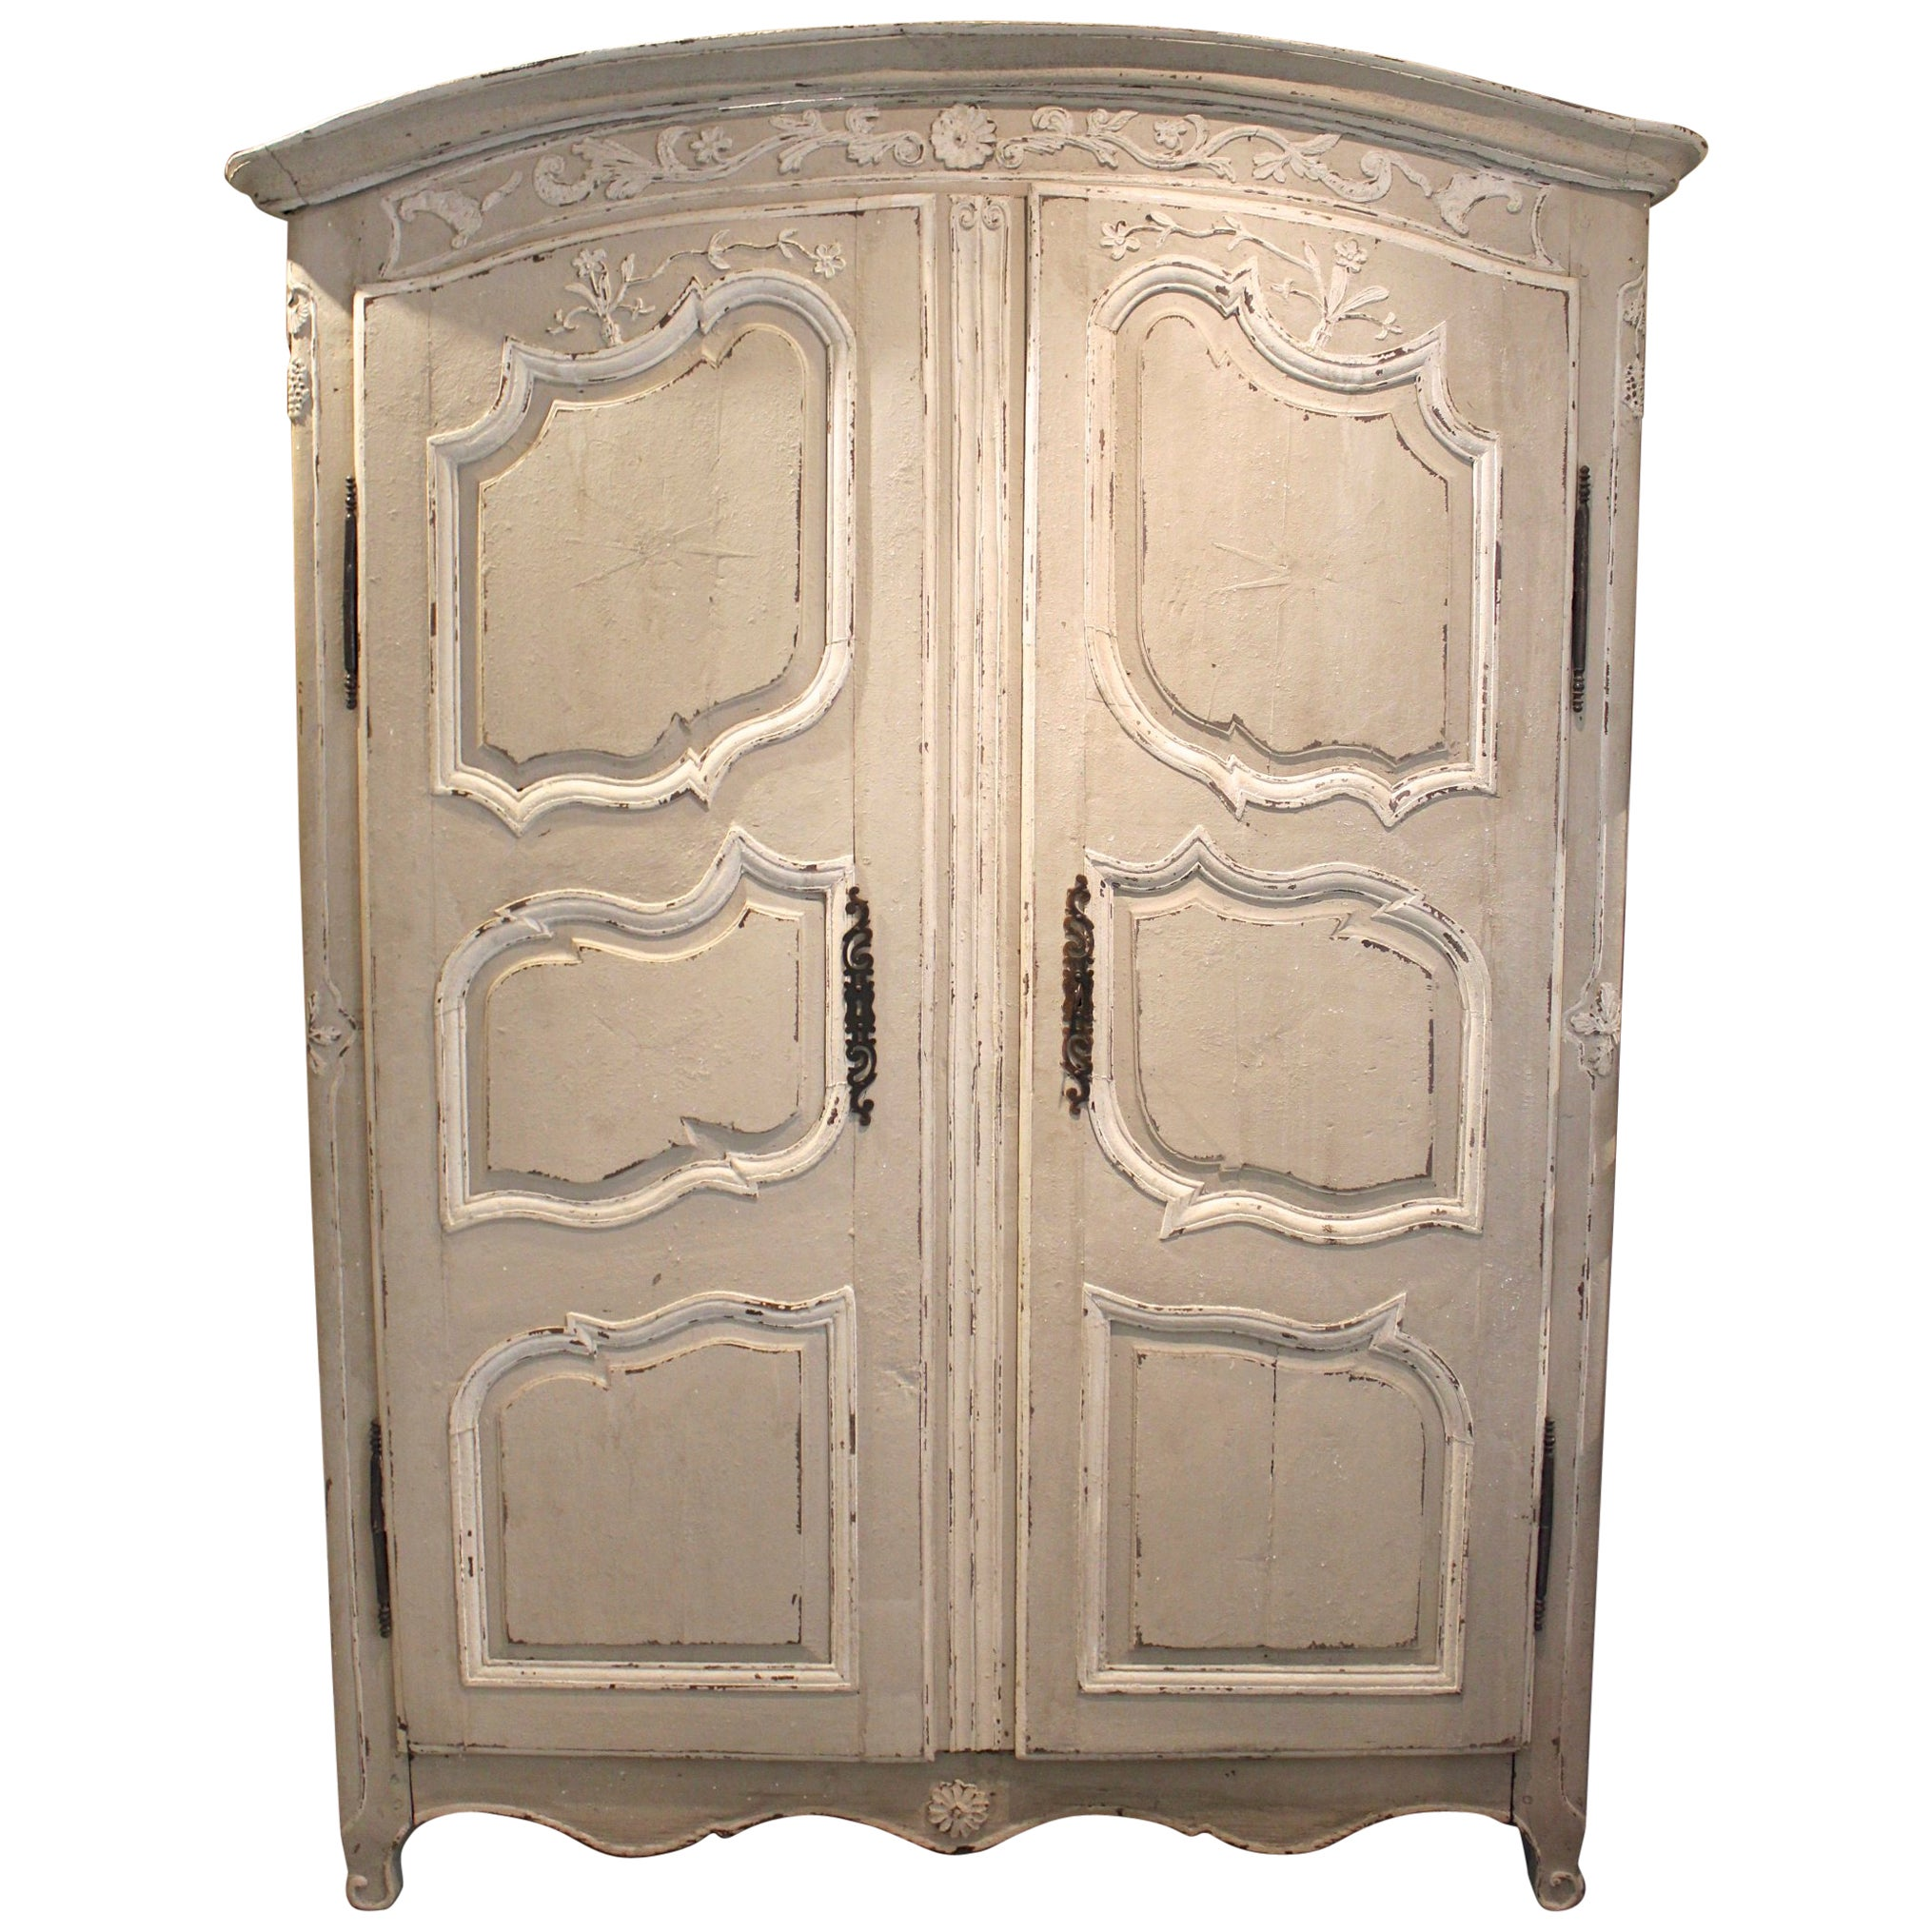 Antique French 18Th Century Louis Xv Armoire With Rare Curved